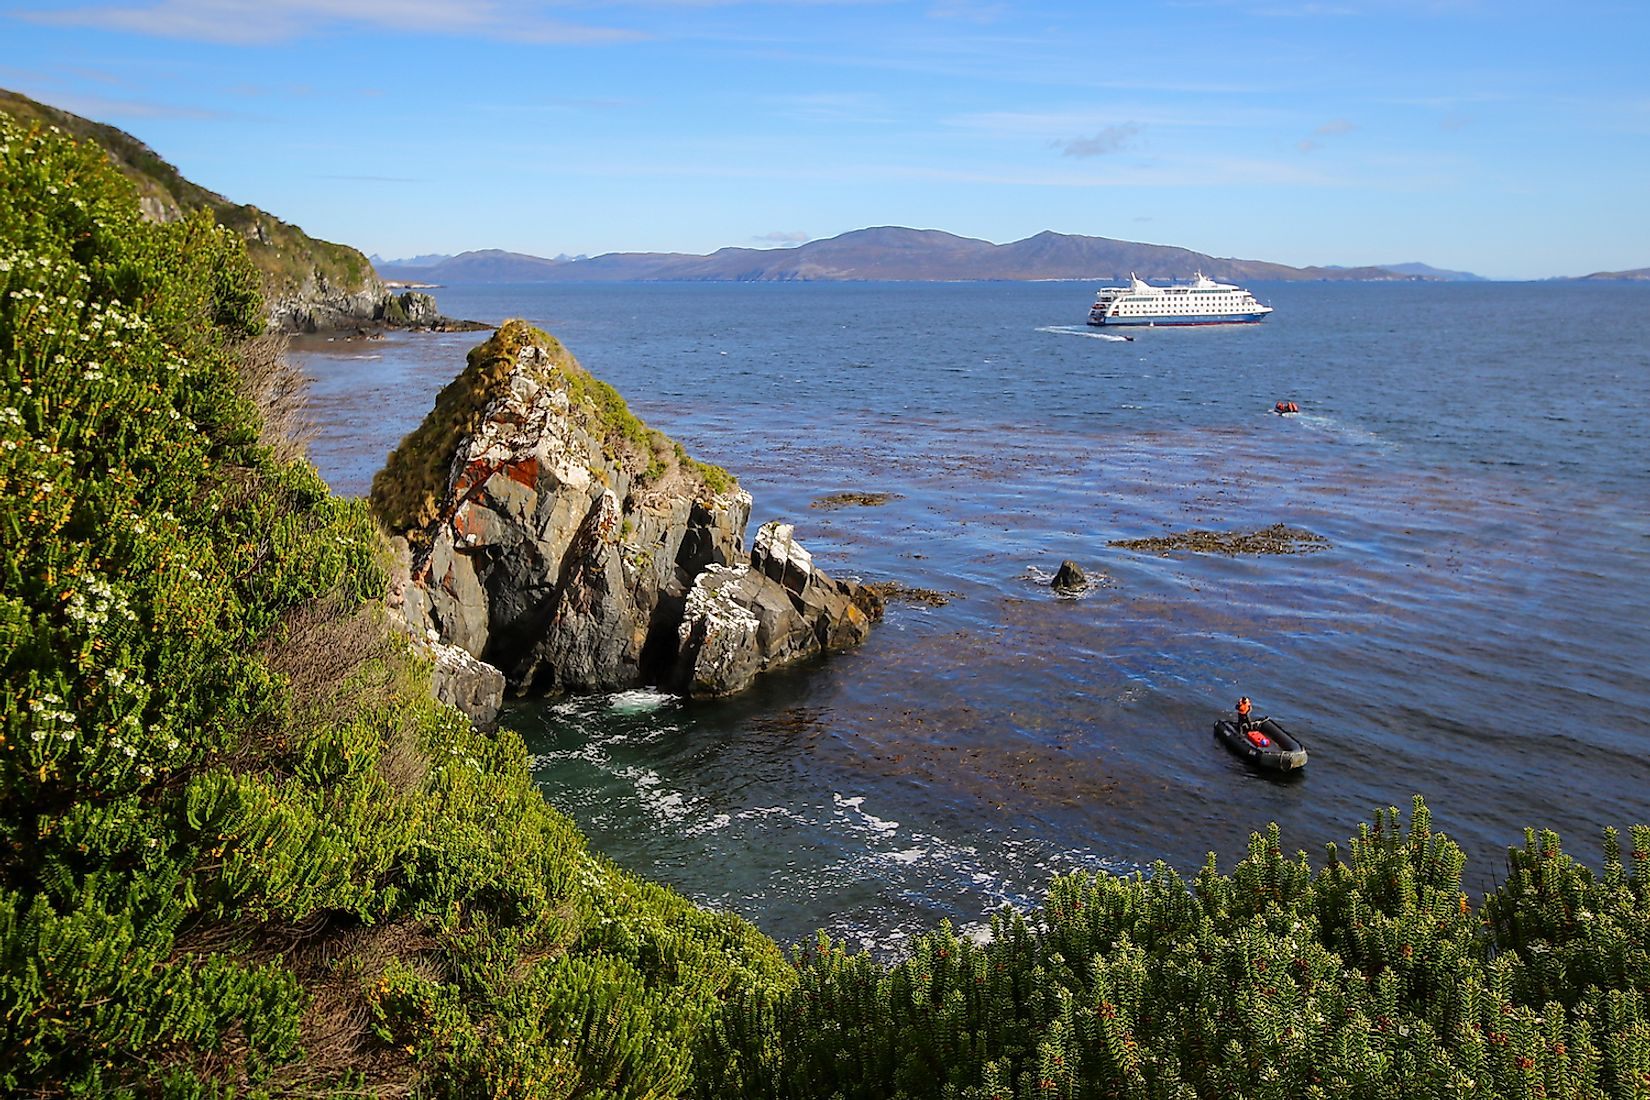 Cruise ship approaching the rocky coast of Cape Horn Island in Chile. Image credit: Alexandre G. ROSA/Shutterstock.com